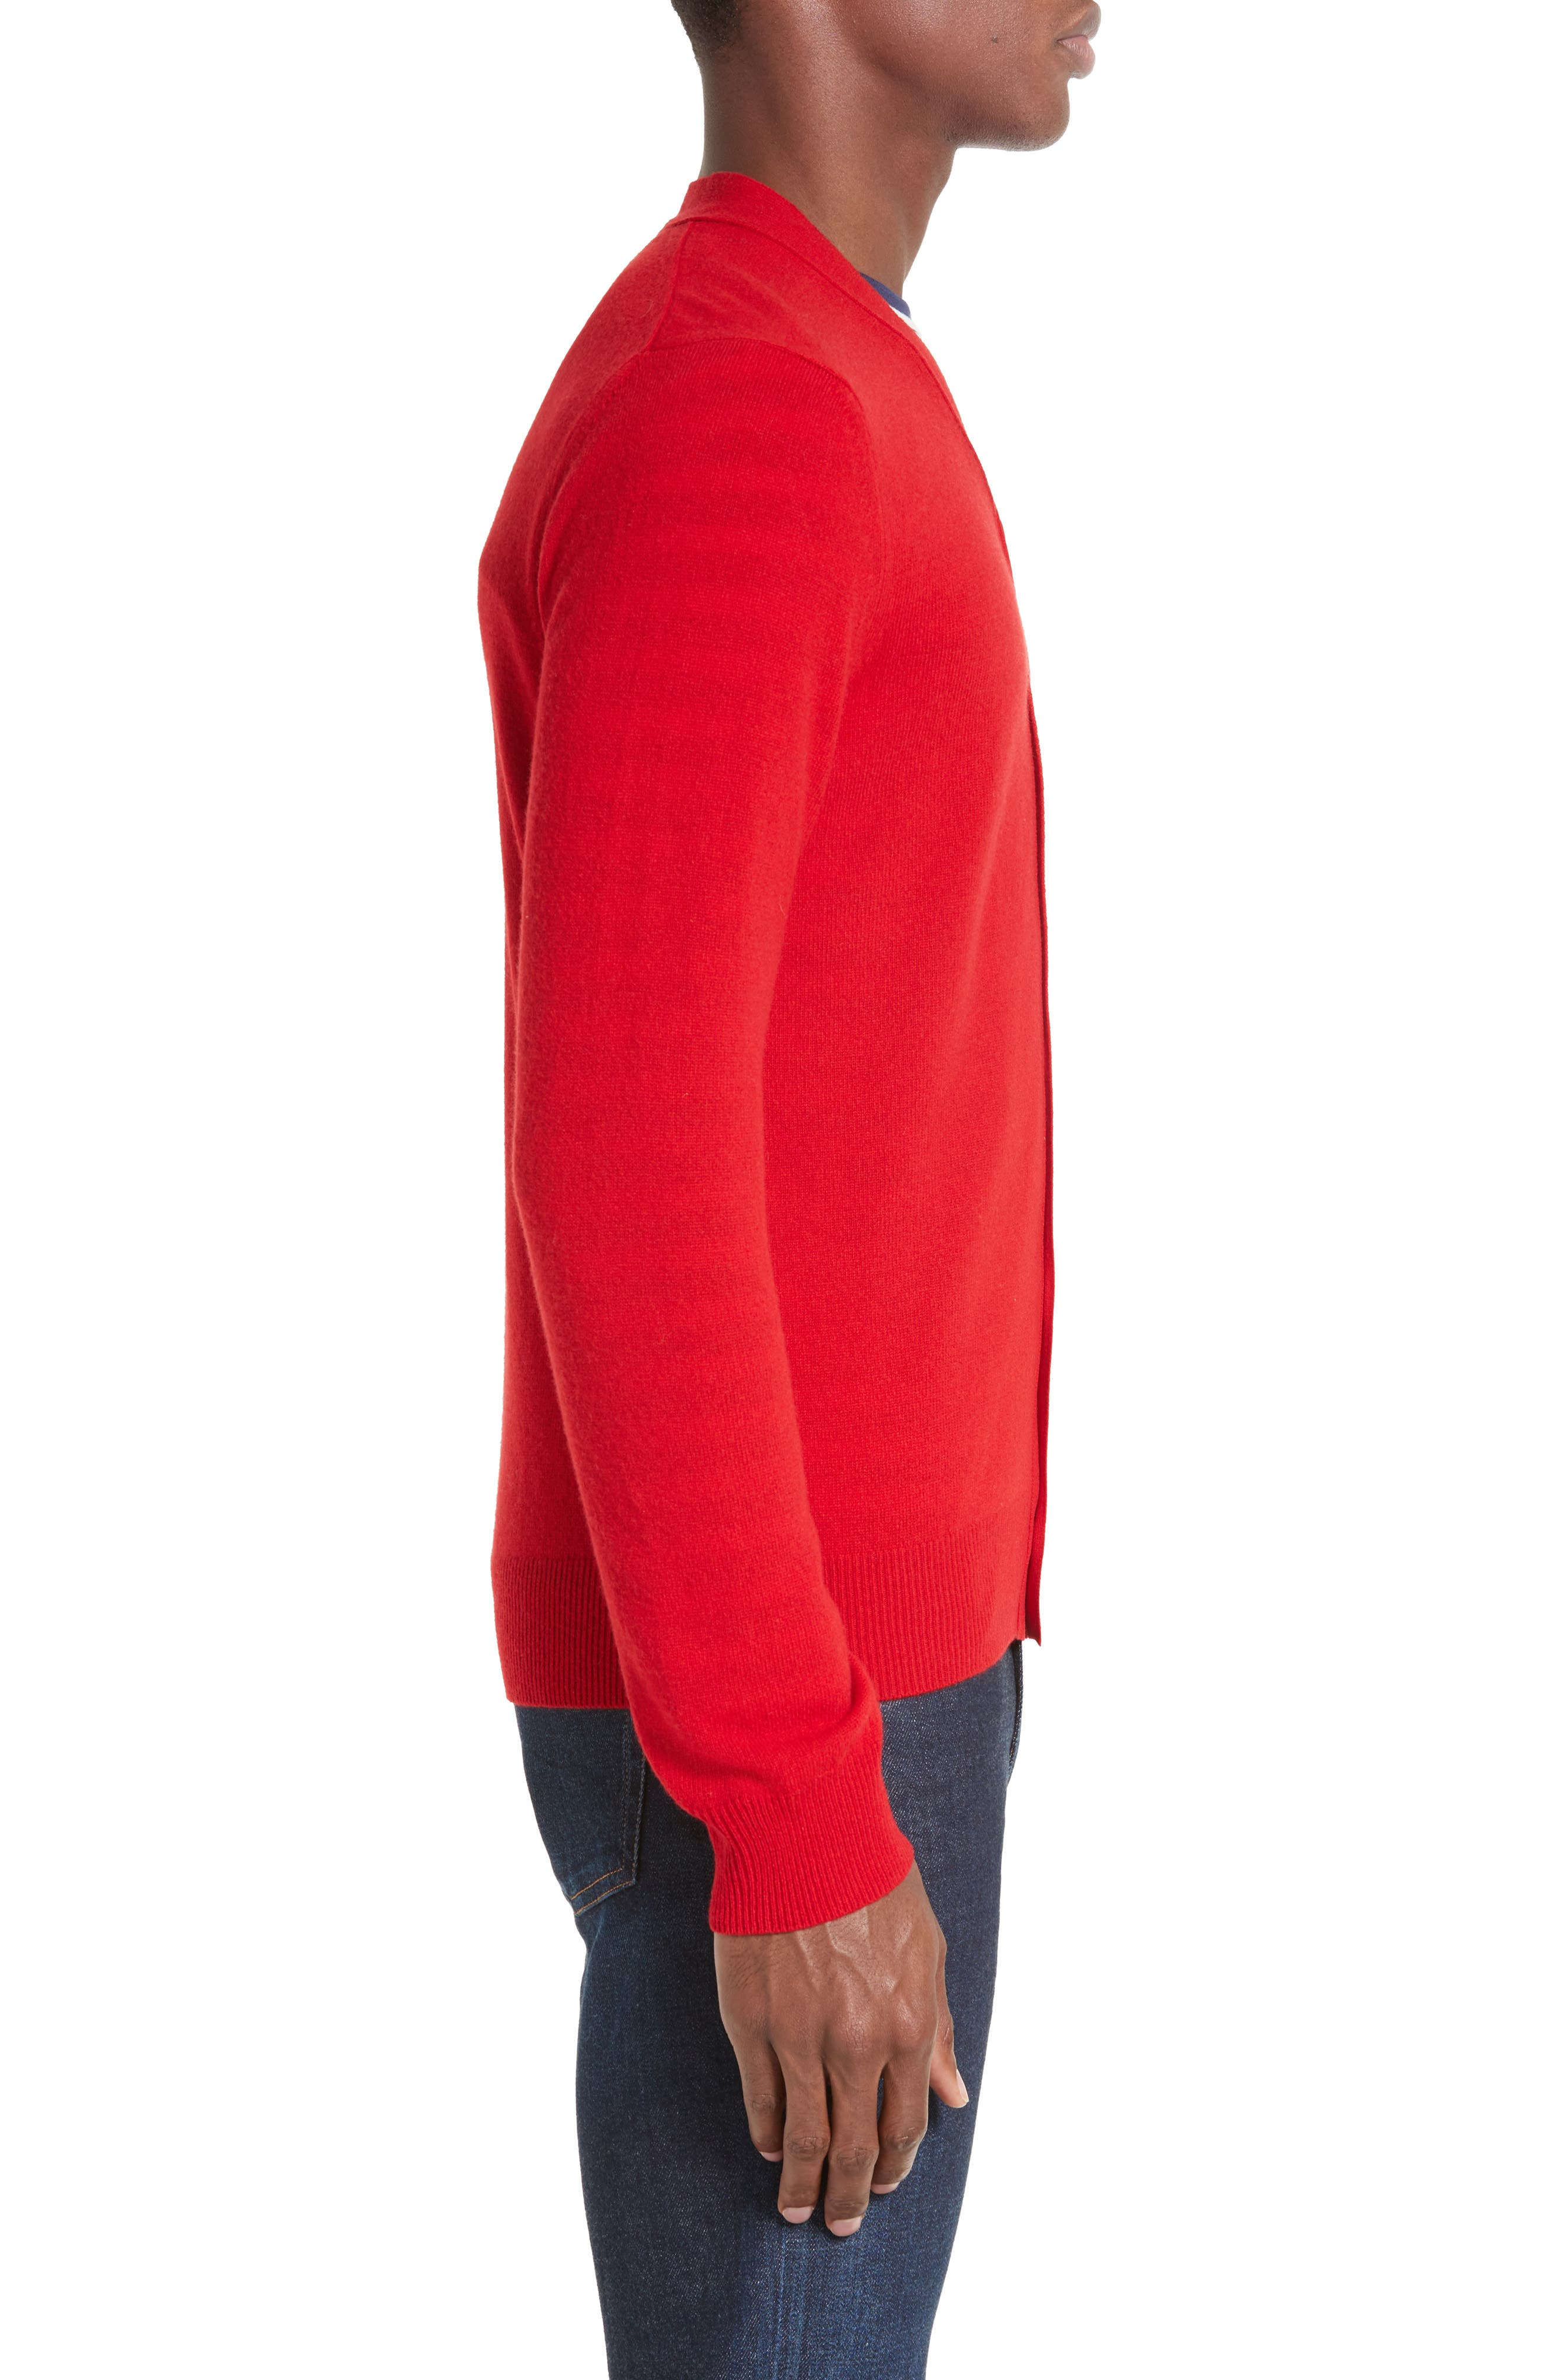 PLAY Wool Cardigan,                             Alternate thumbnail 3, color,                             Red